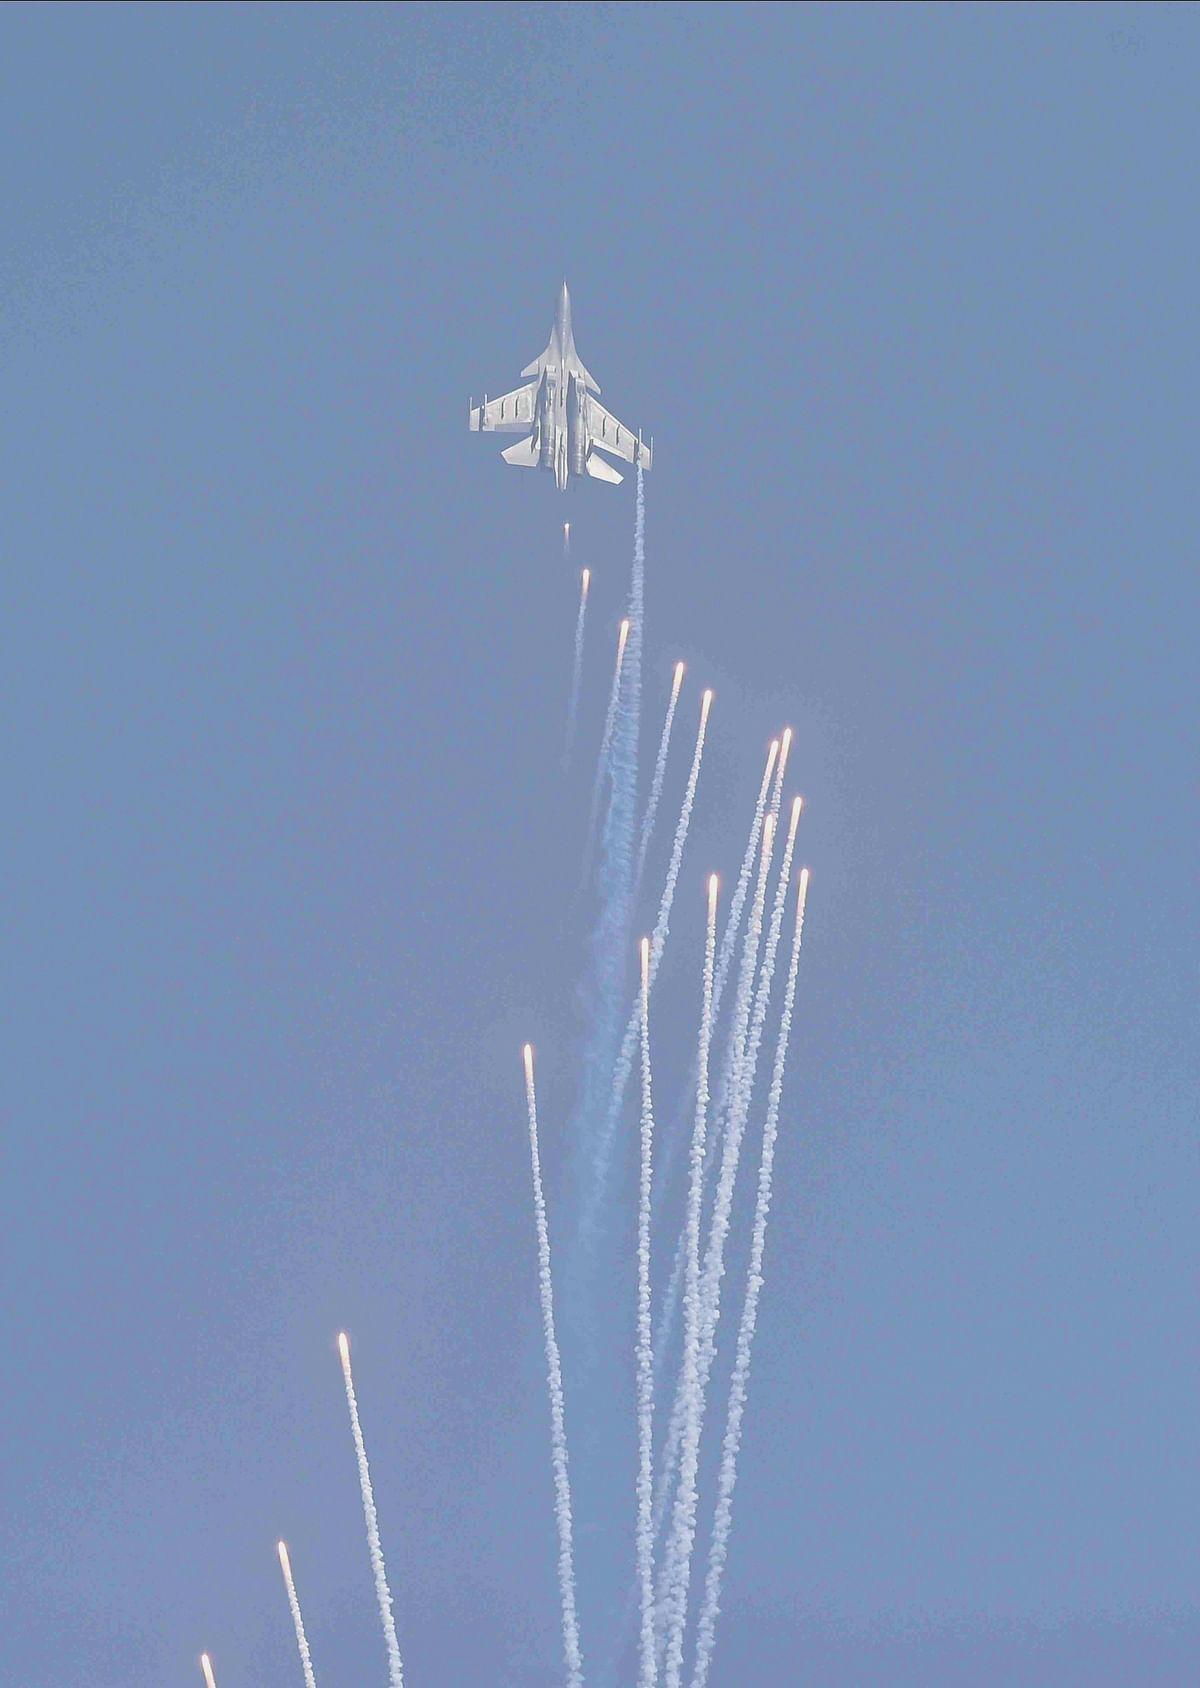 Su-30 aircraft of the Indian Air Force fires flares during the 88th Indian Air Force Day celebrations, at Hindon Airbase in Ghaziabad, .